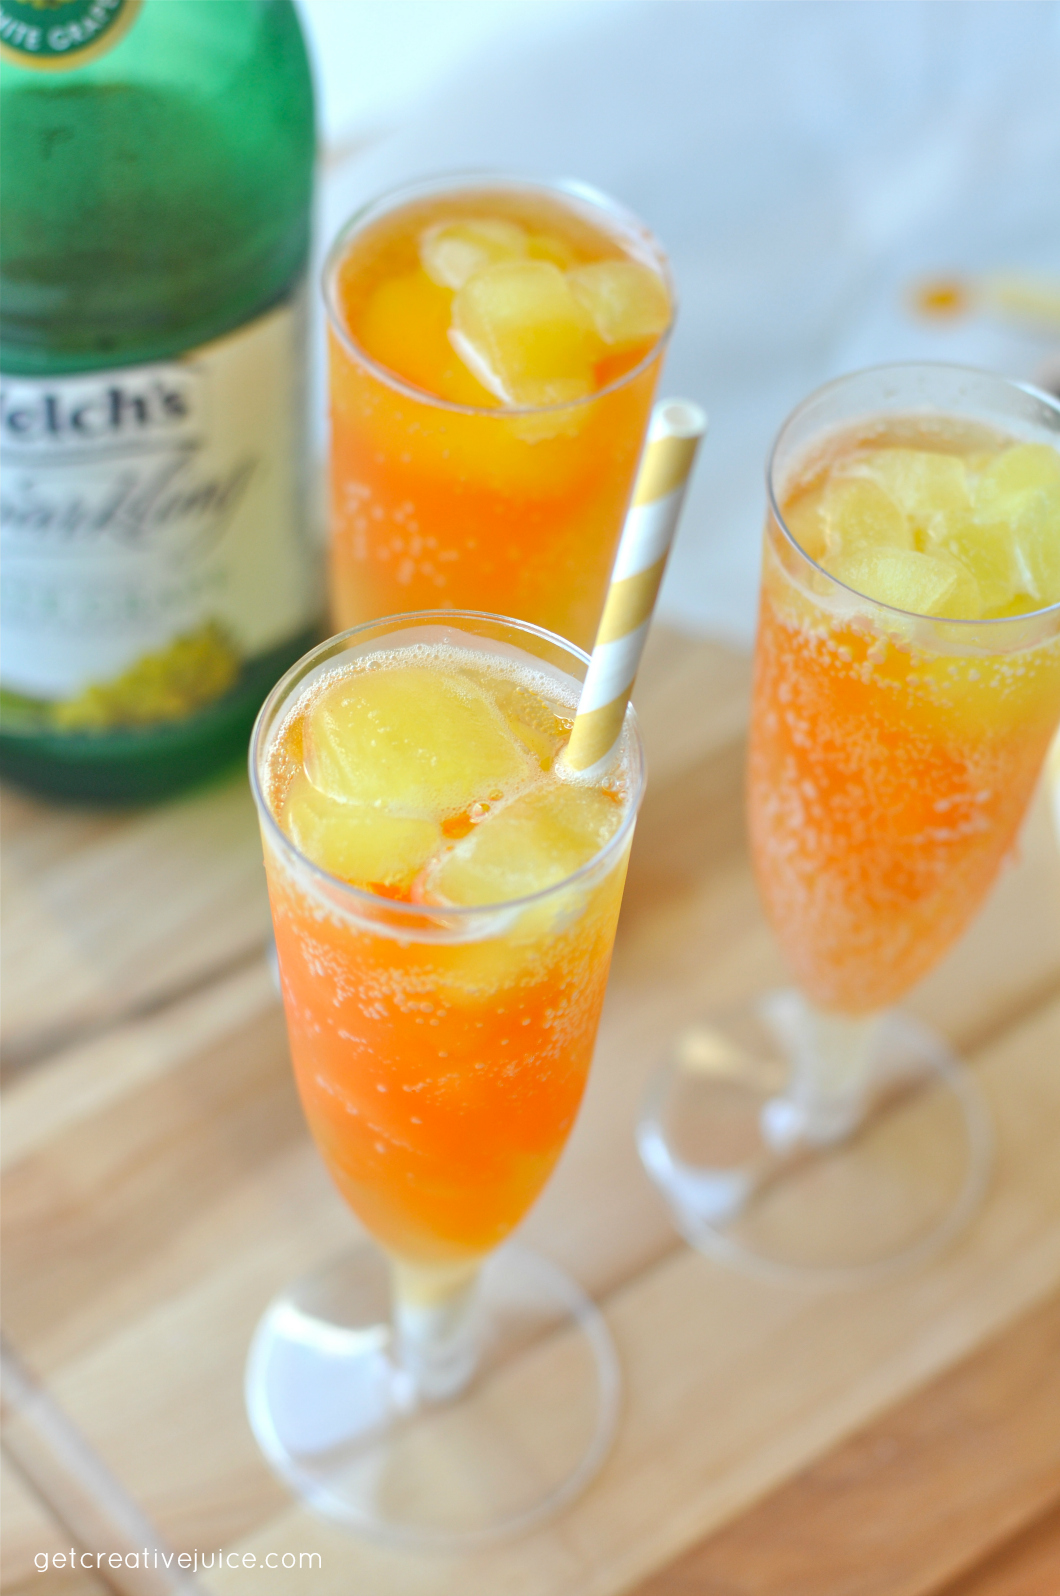 Popsicle Flavored Party Drinks - Recipe and Tutorial